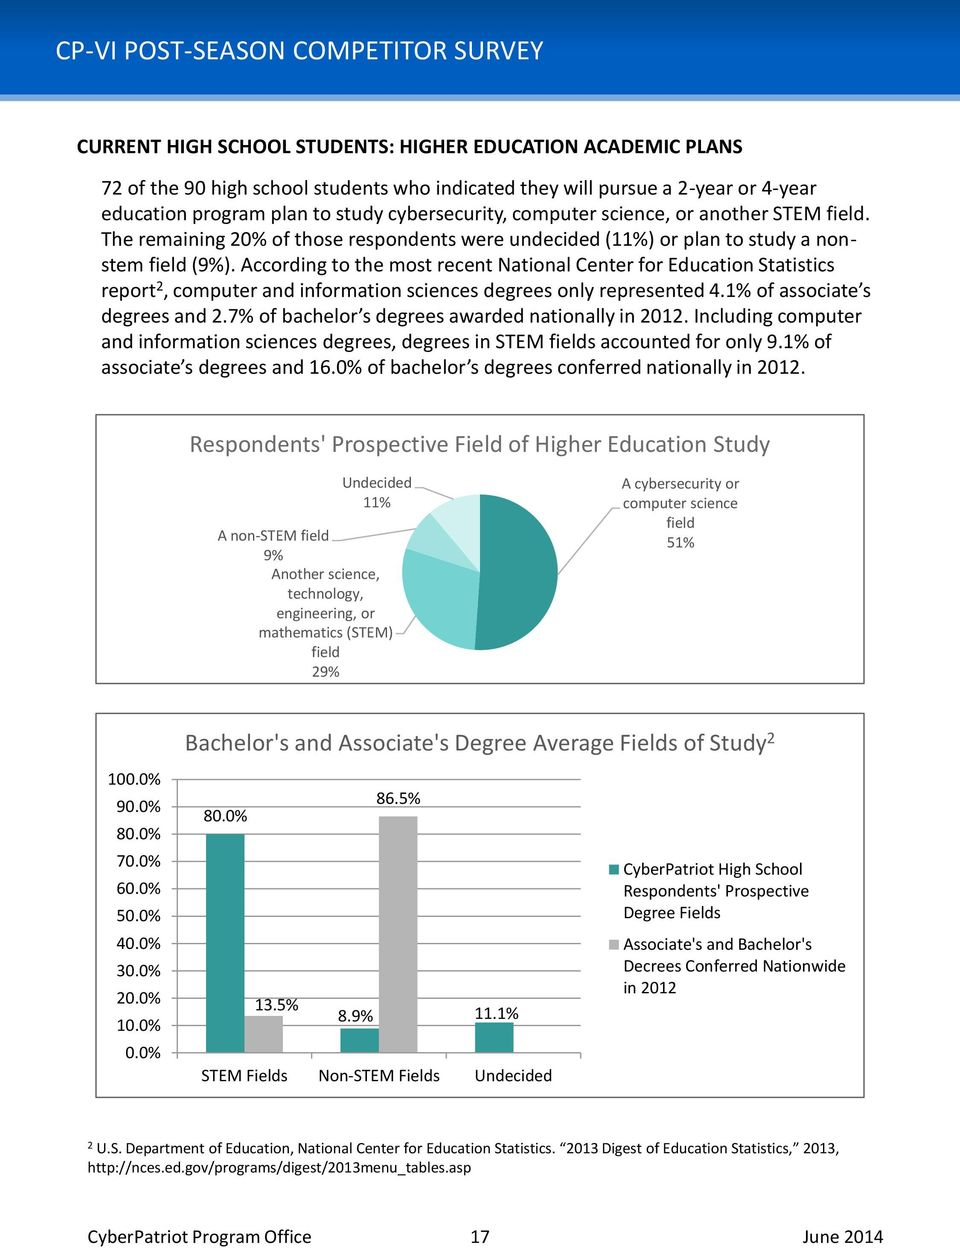 According to the most recent National Center for Education Statistics report 2, computer and information sciences degrees only represented 4.1% of associate s degrees and 2.